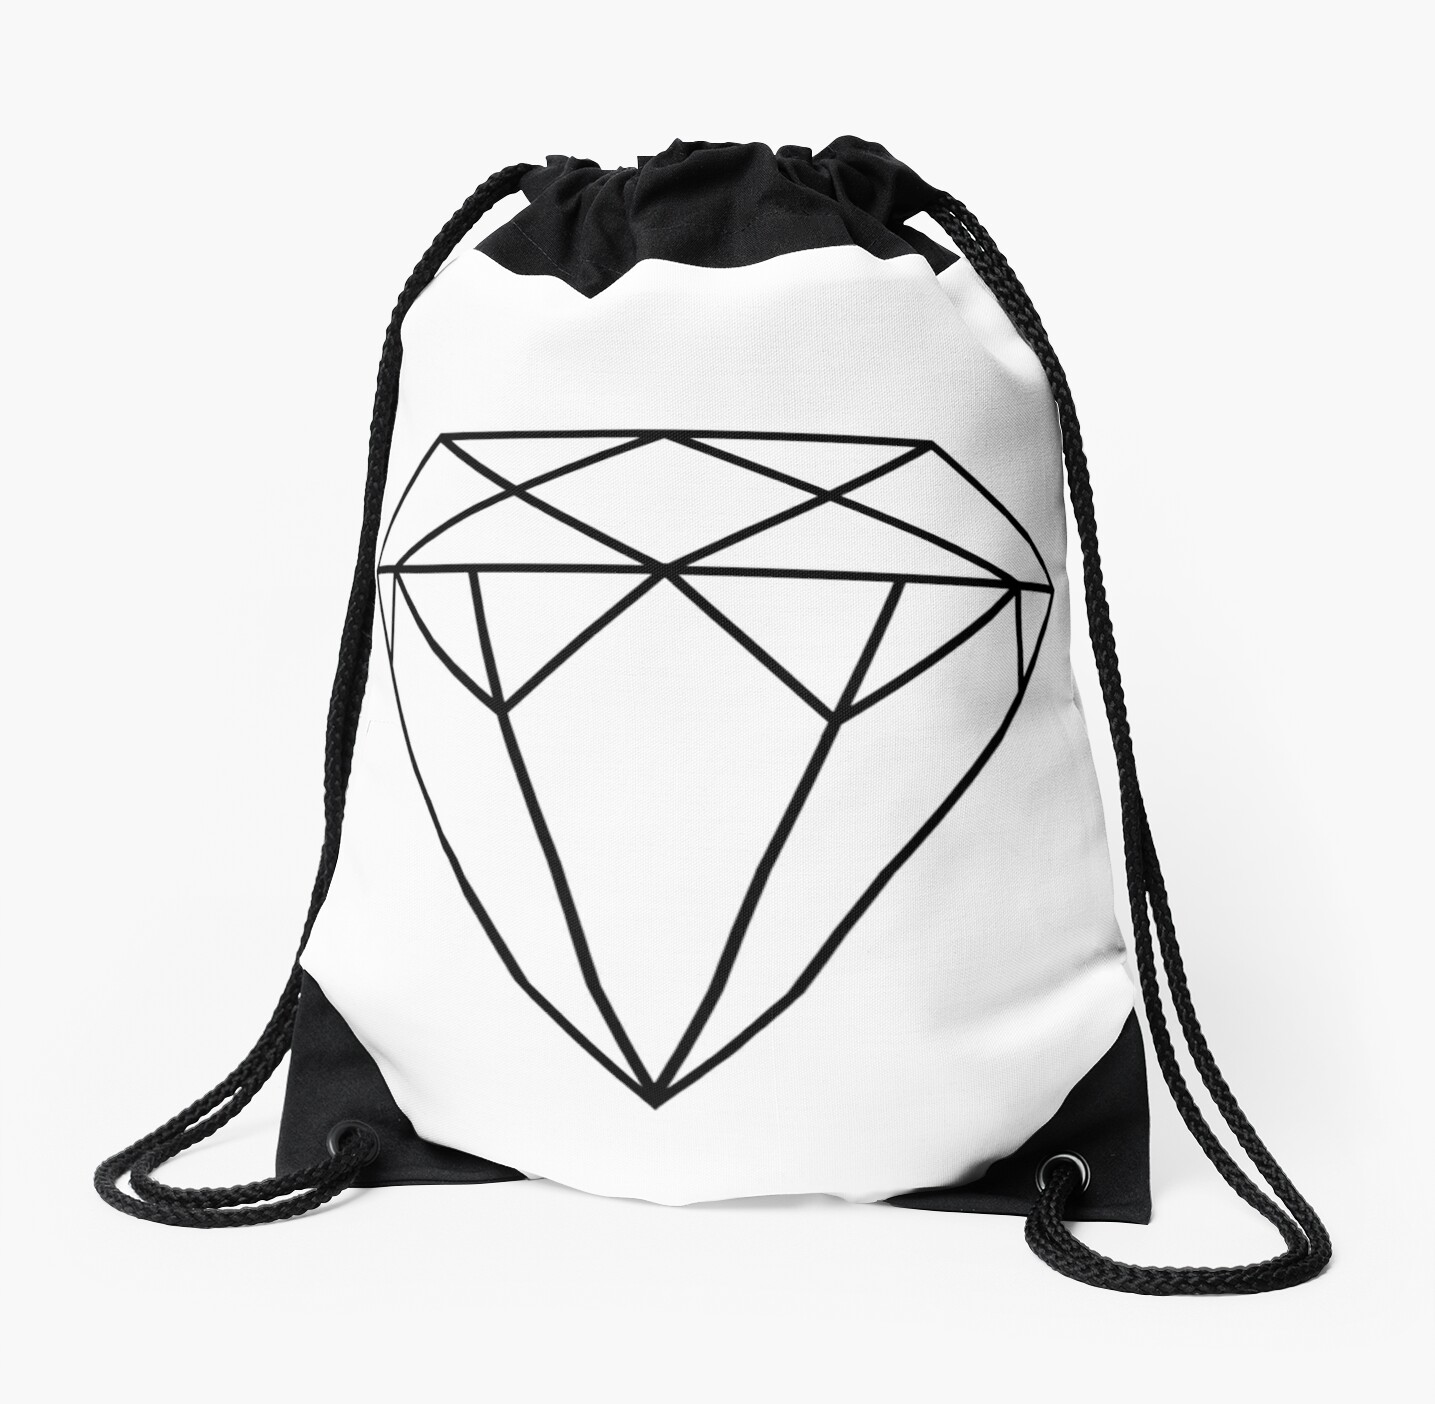 Affiche Scandinave Home Diamond Printable Affiche Scandinave Scandinavian Geometric Decor Wall Art Geometric Print Home Decor Printable Poster Drawstring Bag By Nathan